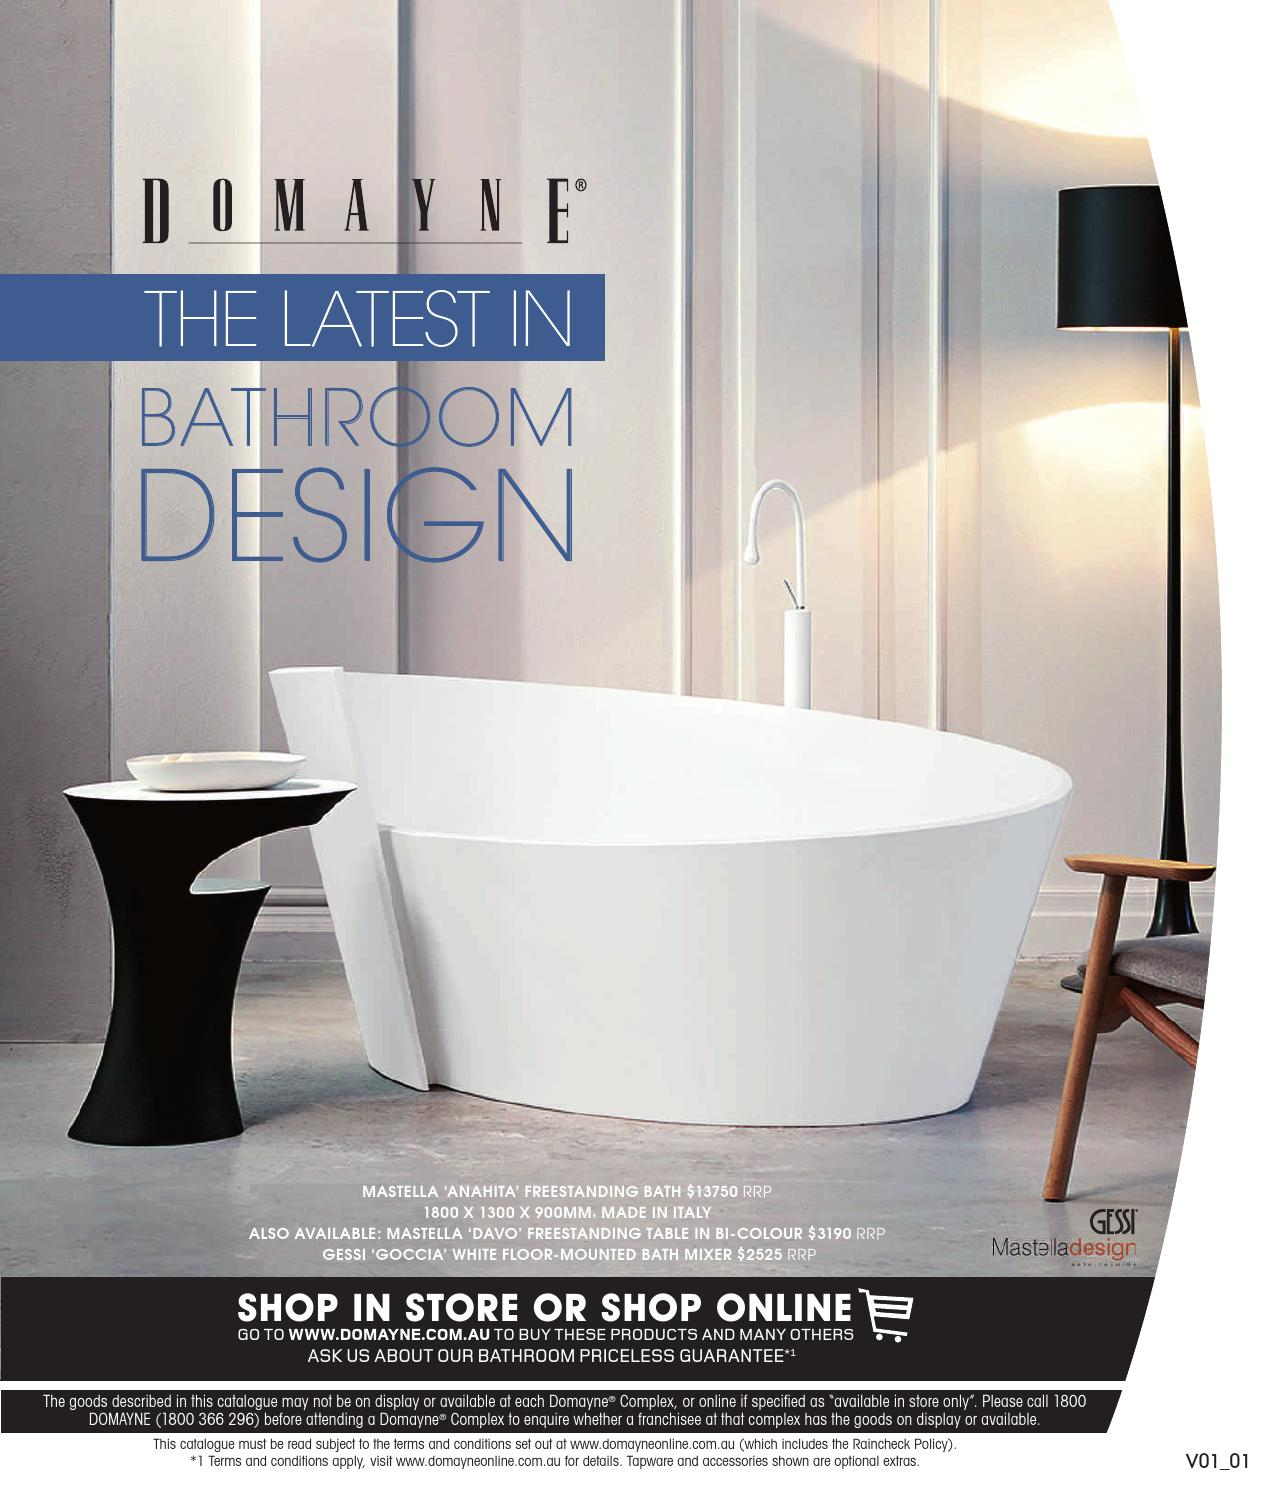 Issuu The Latest In Bathroom Design By Domayne